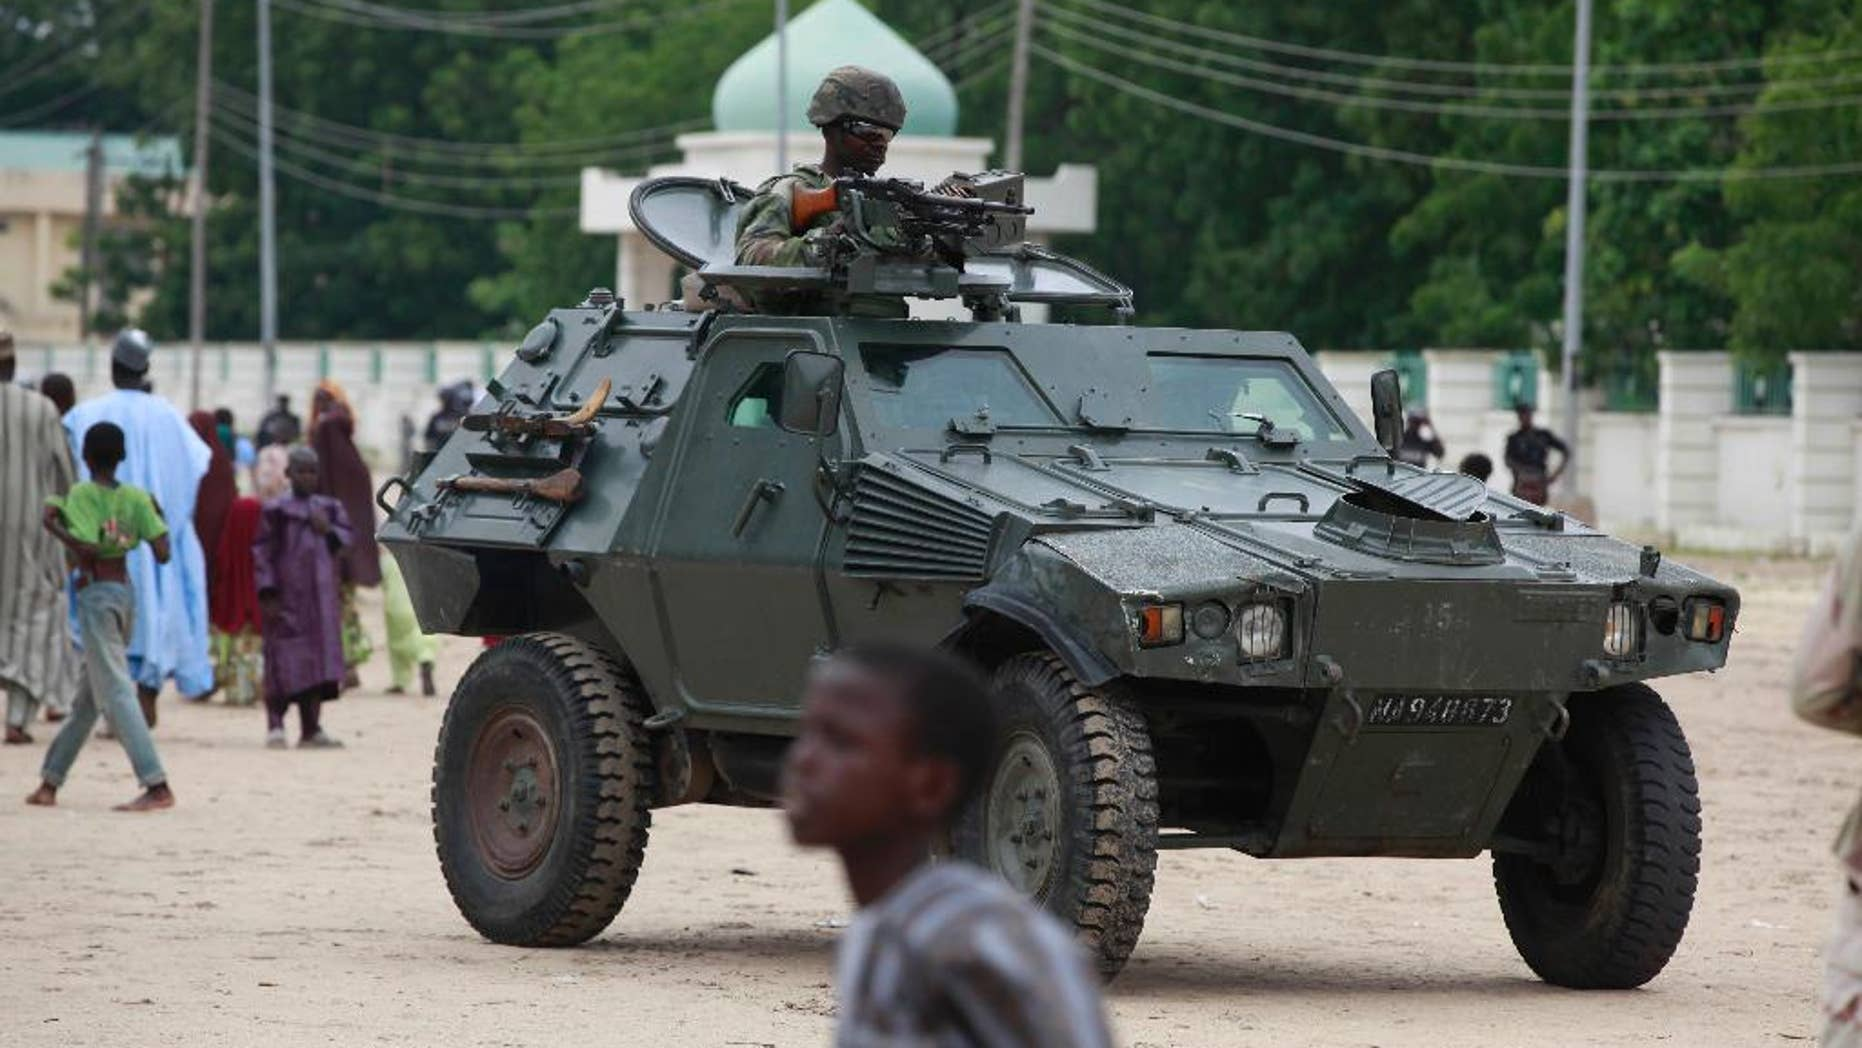 FILE - In this Thursday, Aug. 8, 2013 file photo, Nigerian soldiers ride on an armored personnel carrier during Eid al-Fitr celebrations in Maiduguri, Nigeria. Hundreds of Boko Haram extremists tried to attack the biggest army base in northeast Nigeria overnight but met fierce resistance from soldiers who fired artillery throughout the night. Booming cannon and whooshing rockets woke people living around Giwa Barracks in Maiduguri, the northeast's biggest city. Hundreds fled though some were returning home Thursday, May 14, 2015. Many villagers were killed by shells that hit the outlying village of Kayamla, where the soldiers engaged hundreds of militants, according to Muhammad Gava, a hunter who is secretary of the self-defense Vigilante Group of Nigeria. (AP Photo/Sunday Alamba, File)